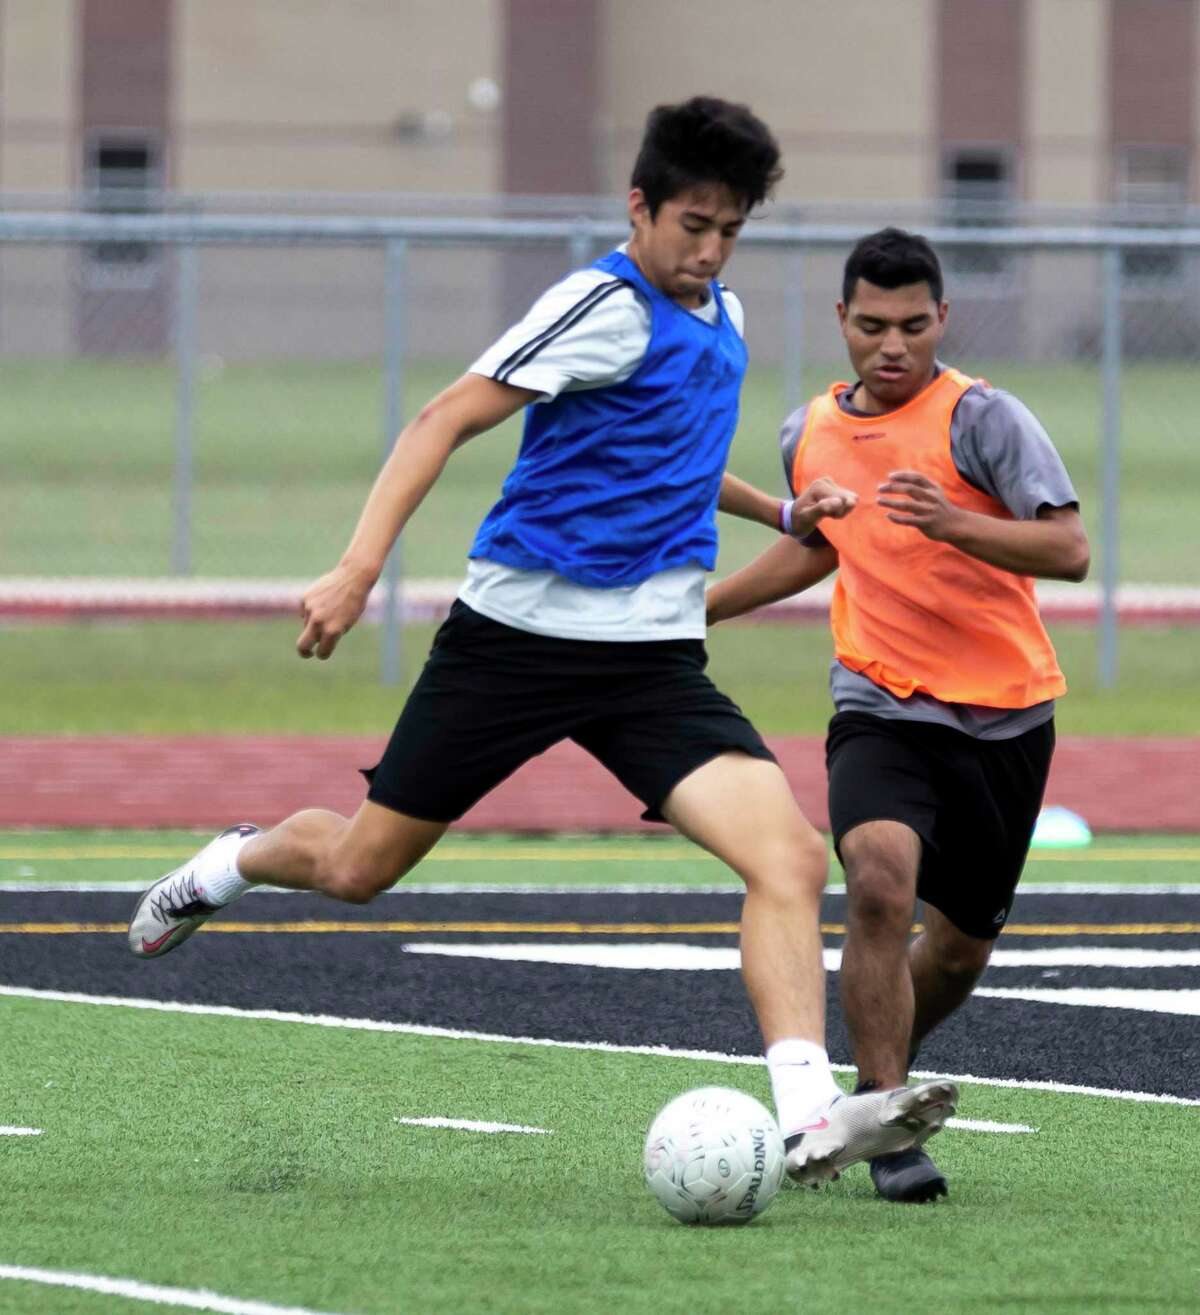 Jesus Cervantes of Kingwood Park, senior, left, kicks the ball while under pressure during practice at Panthers Stadium in Kingwood Park High School, Thursday, April 15, 2021, in Kingwood. Kingwood Park will faceoff Wakeland High School, Saturday, April 17, during the 2021 Boys Soccer State Championship - UIL 5A Boys Soccer Championship in Georgetown.